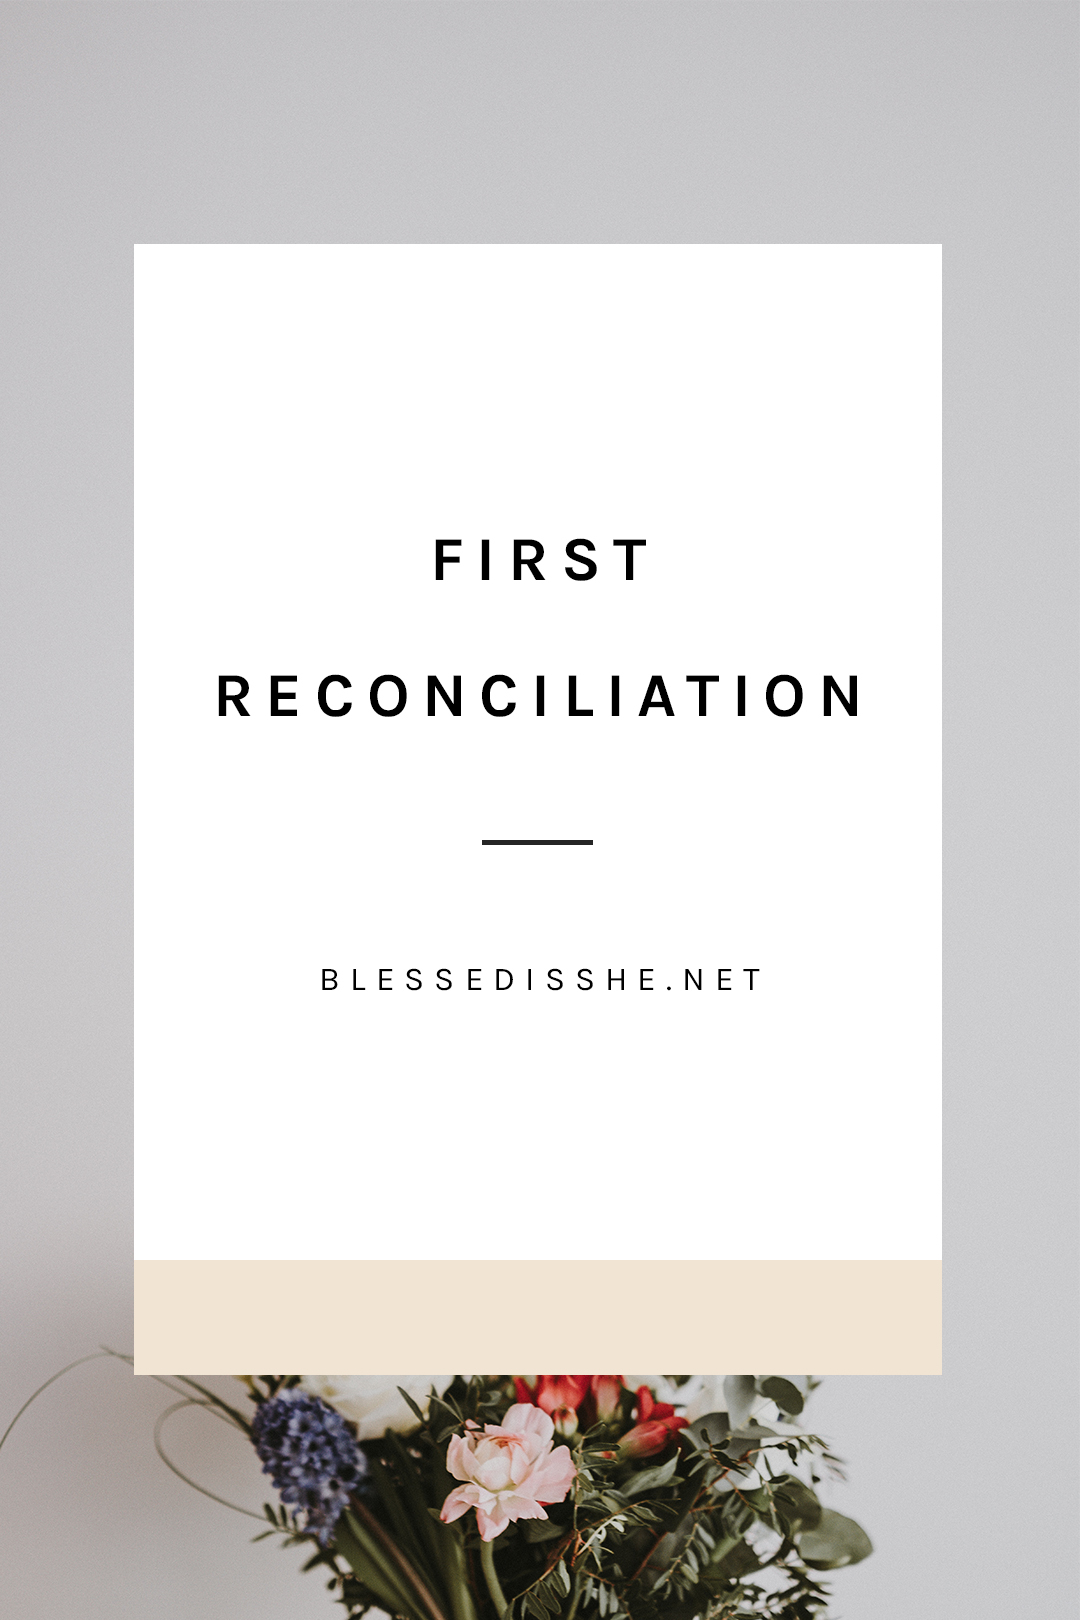 First Reconciliation An Act Of Contrition A Poem